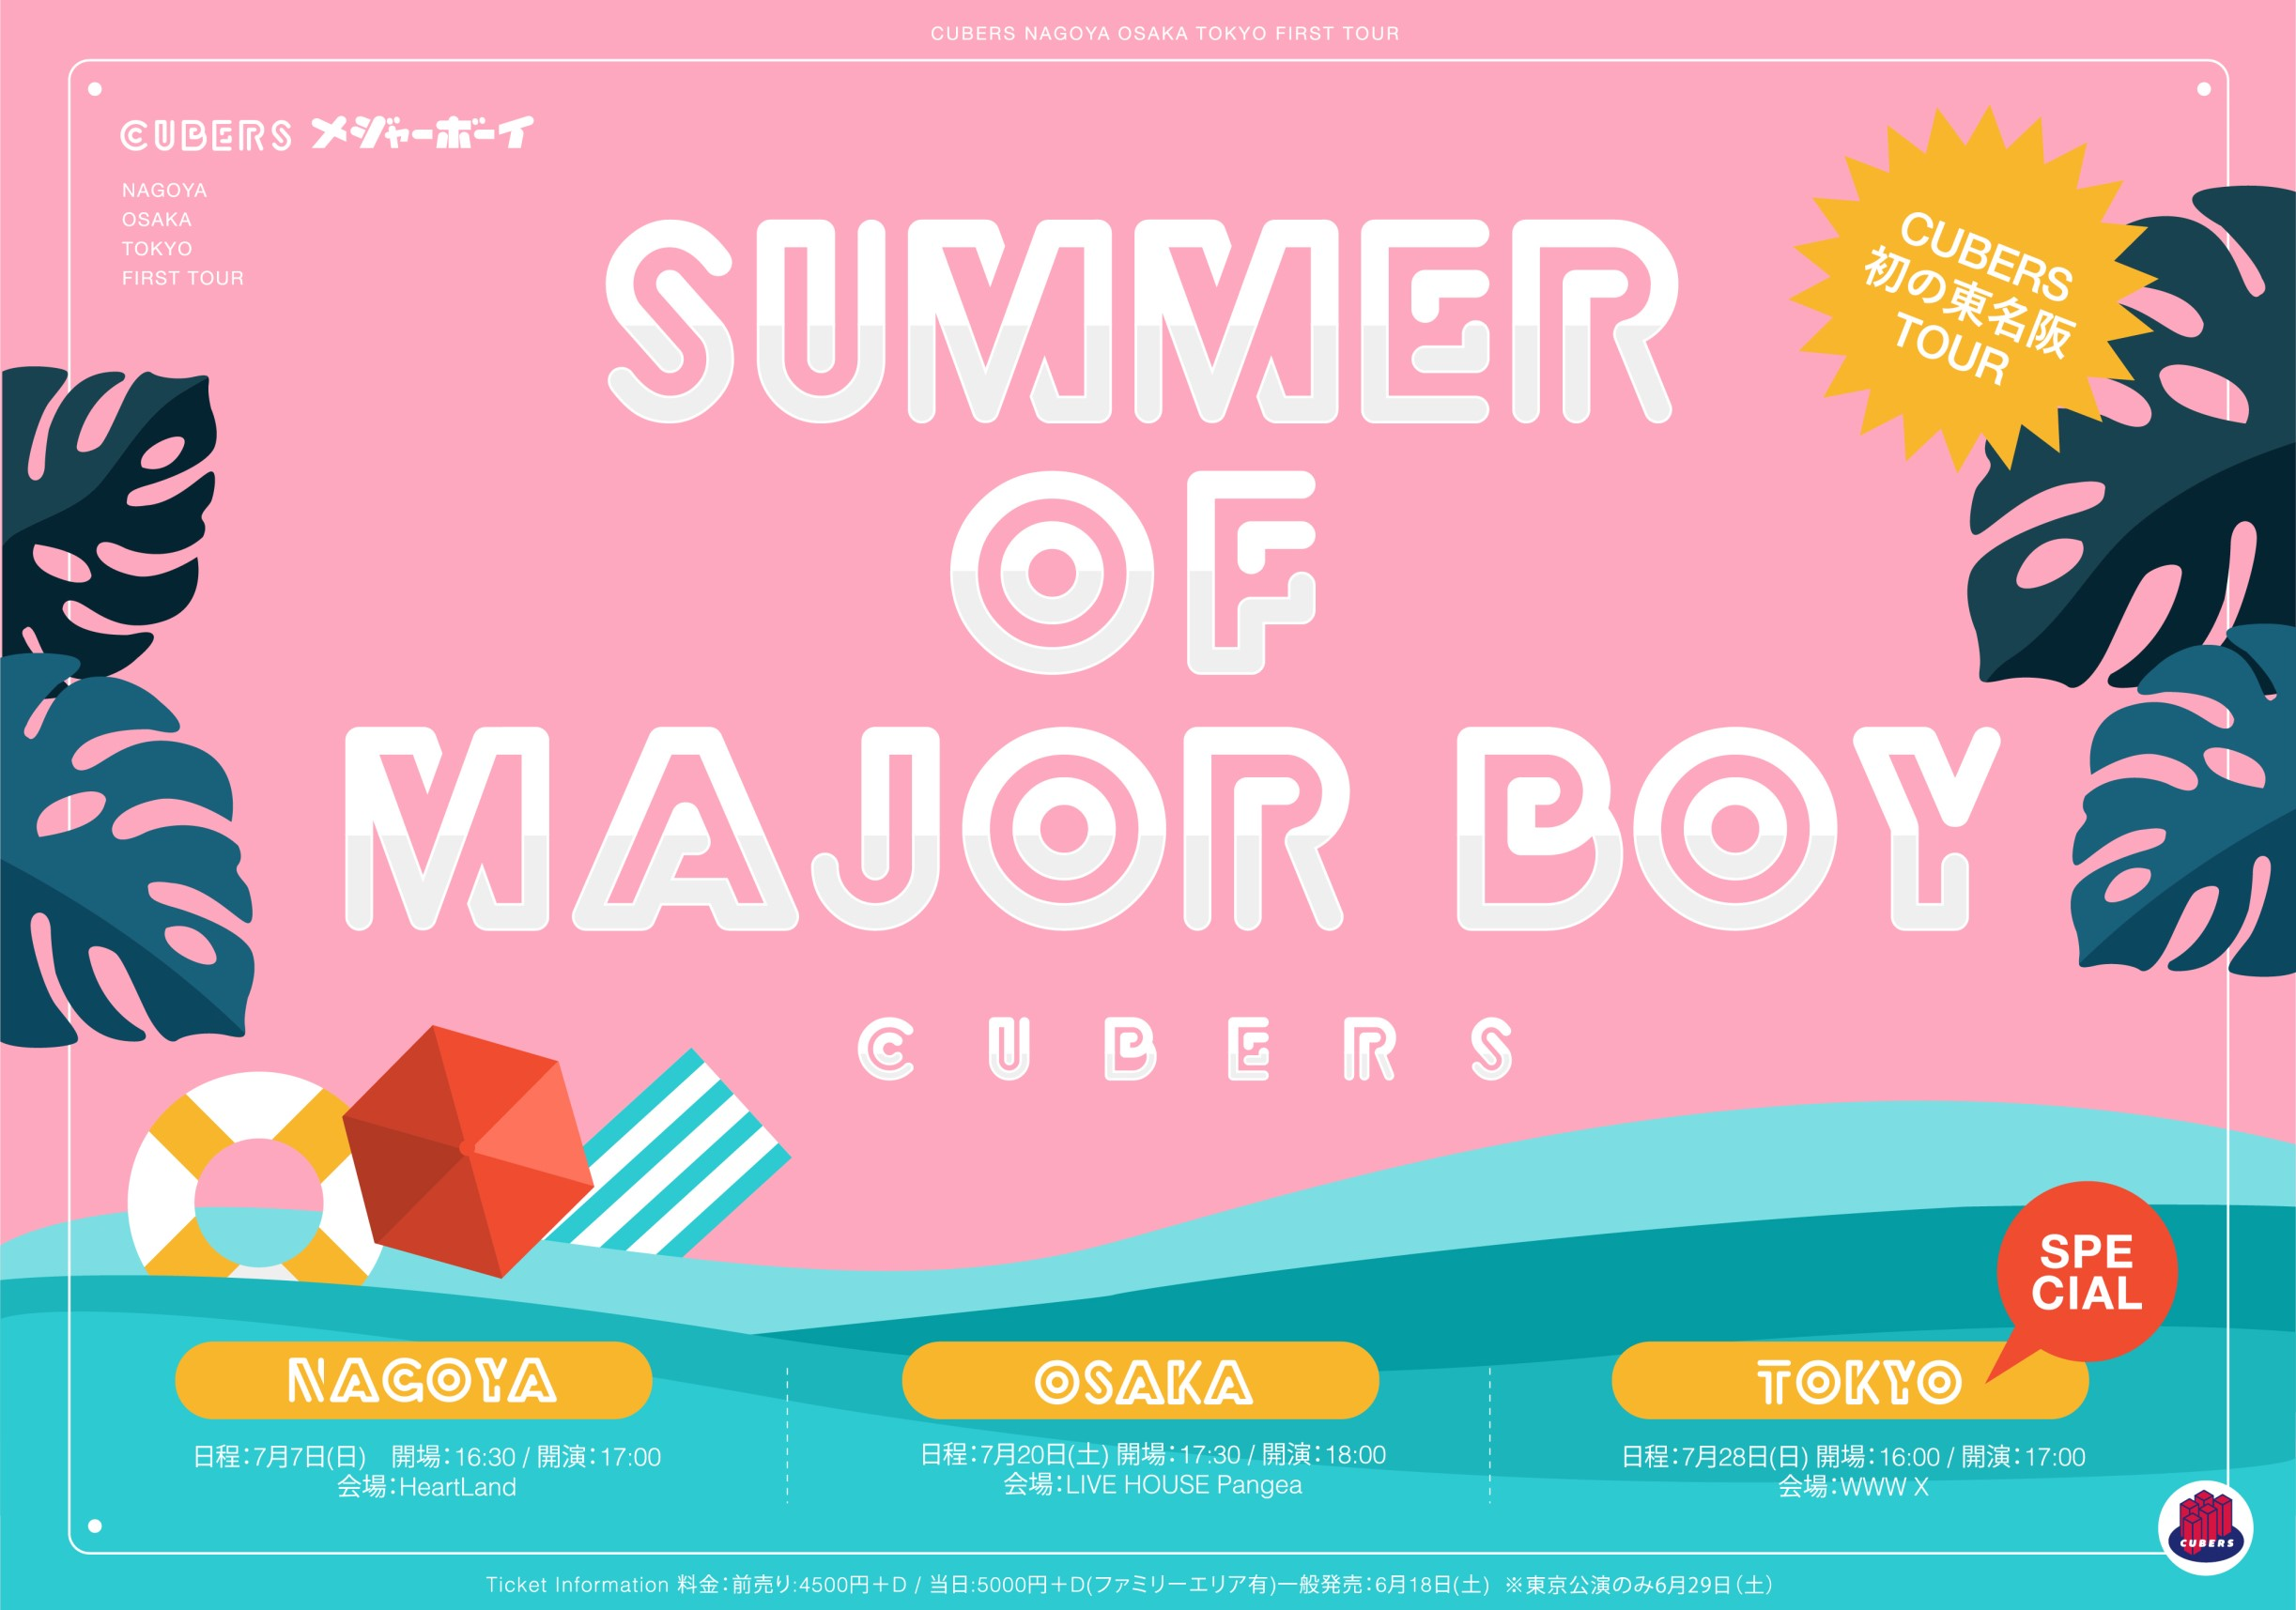 【NEWS】『CUBERS 初の東名阪TOUR〜SPECIAL SUMMER OF MAJOR BOY〜』プレイガイド先行について